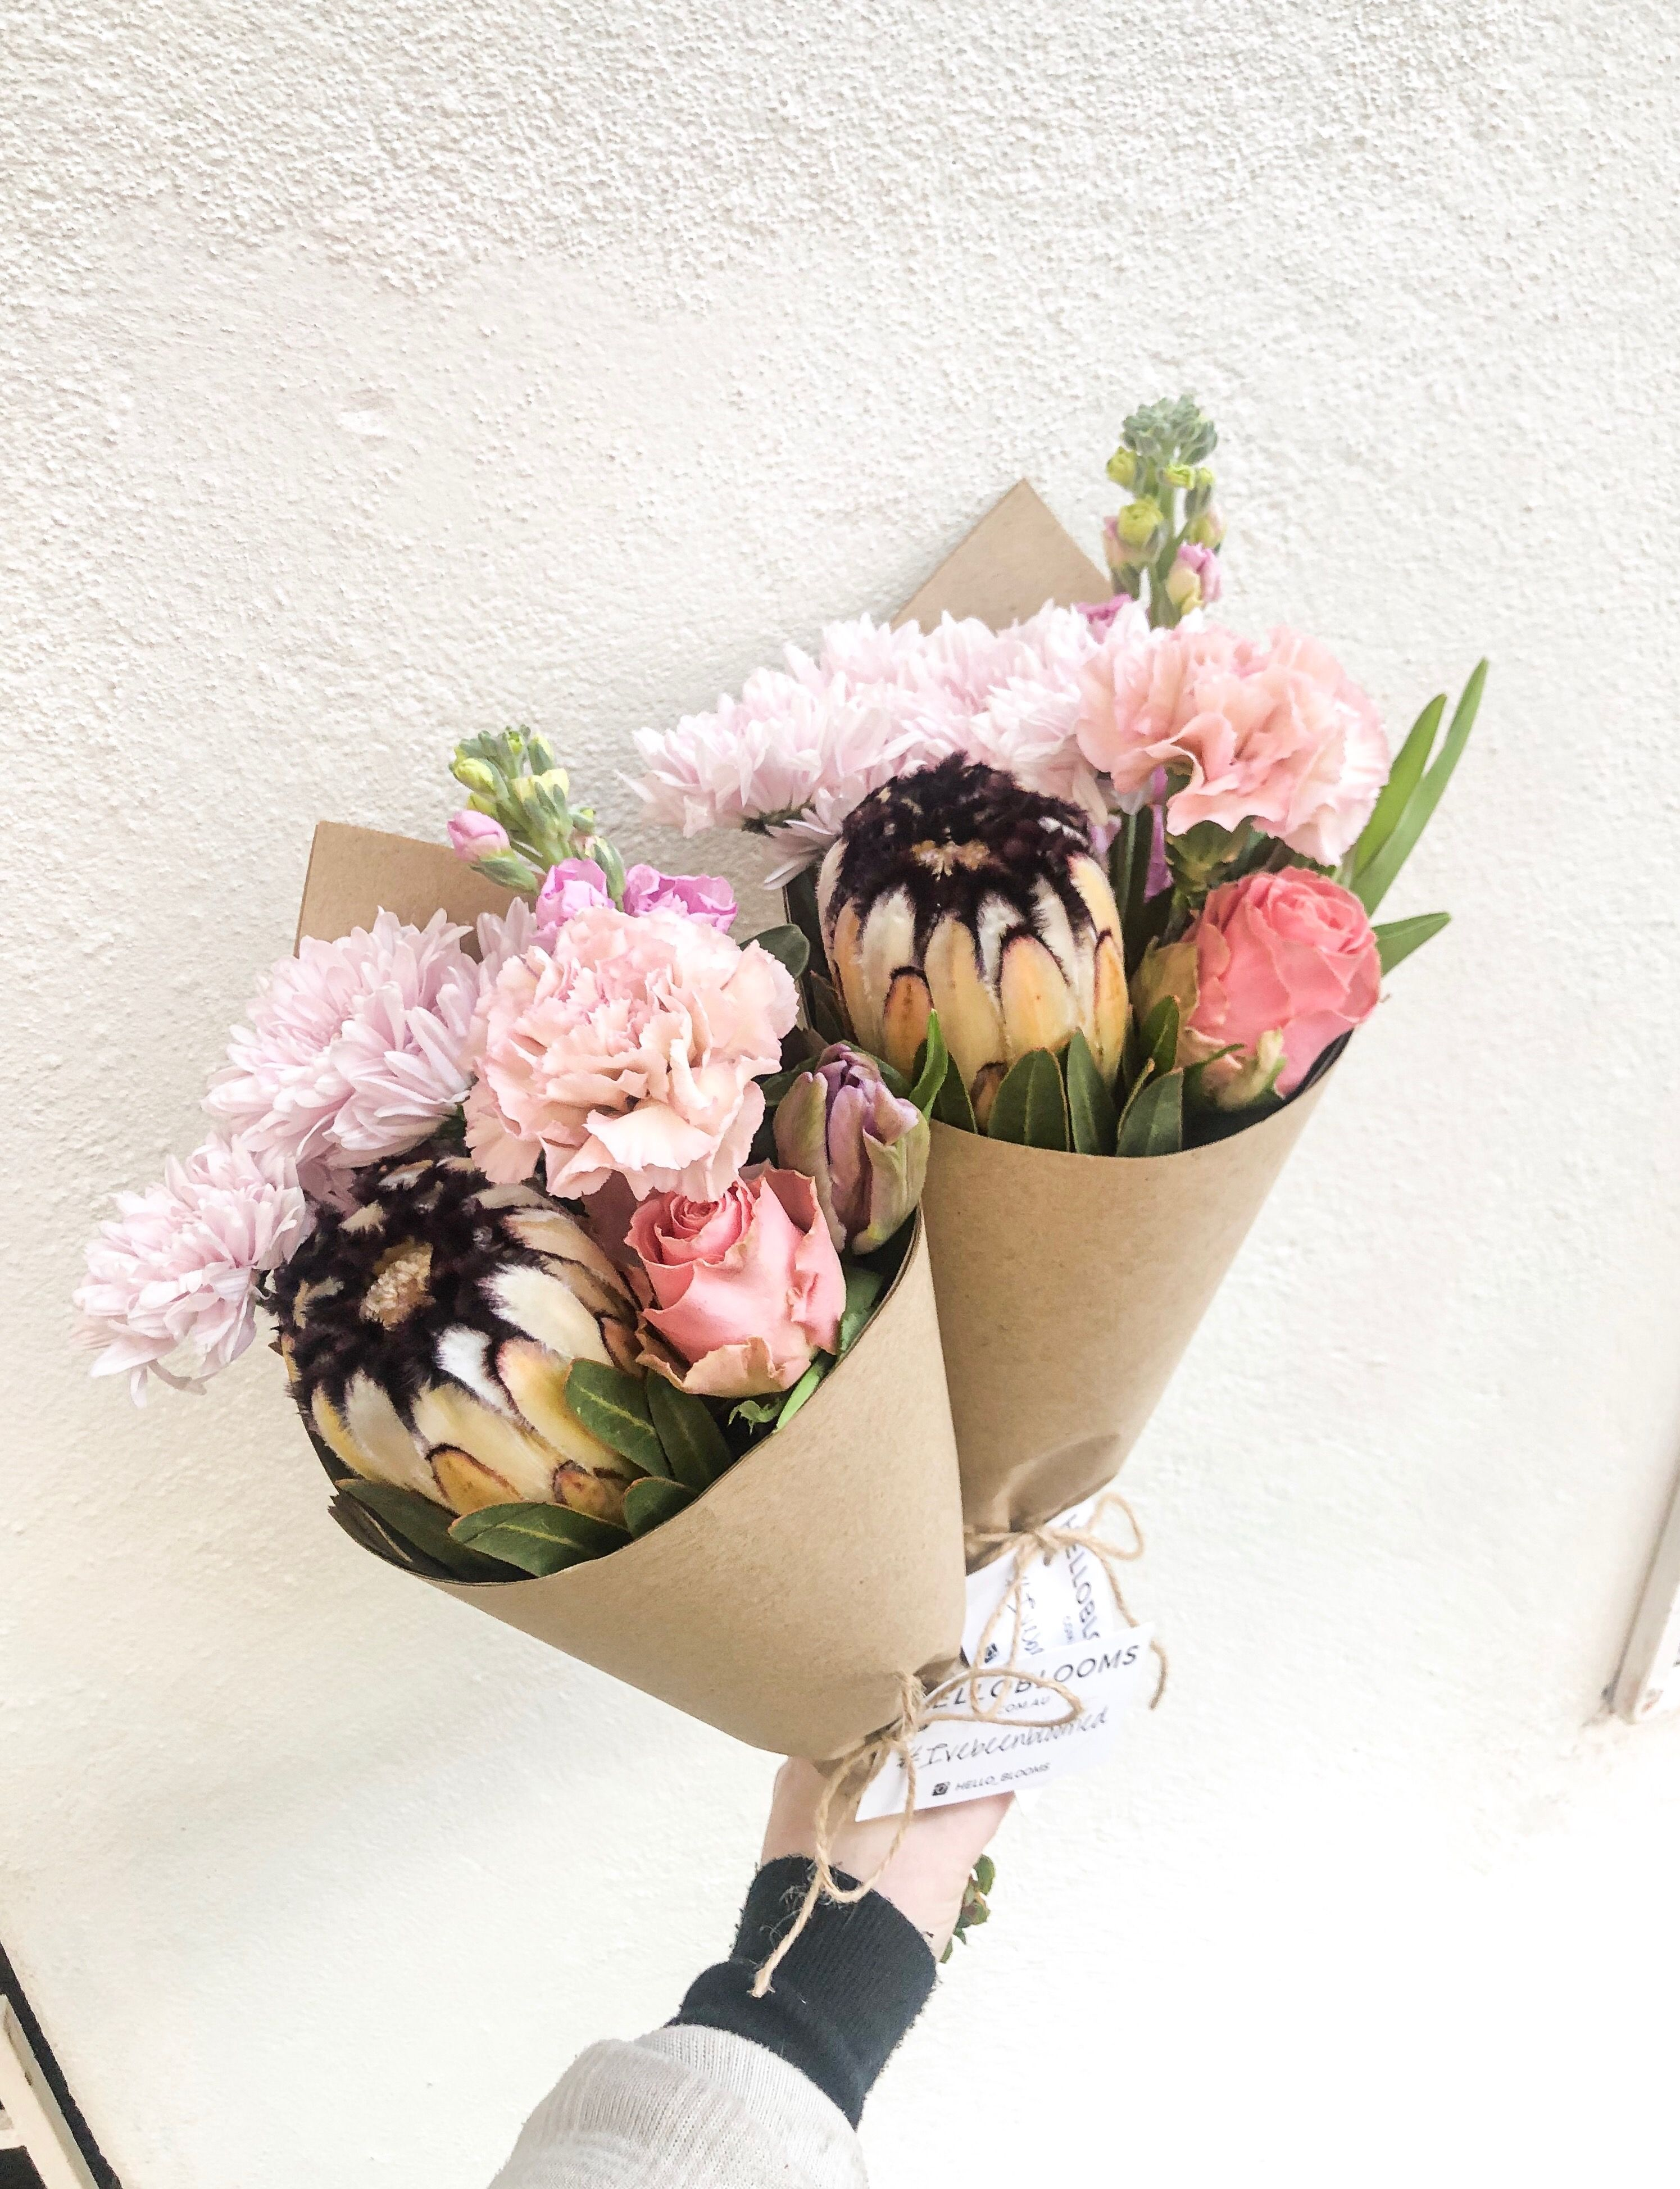 Mink Protea's feature in our beautiful posy on this